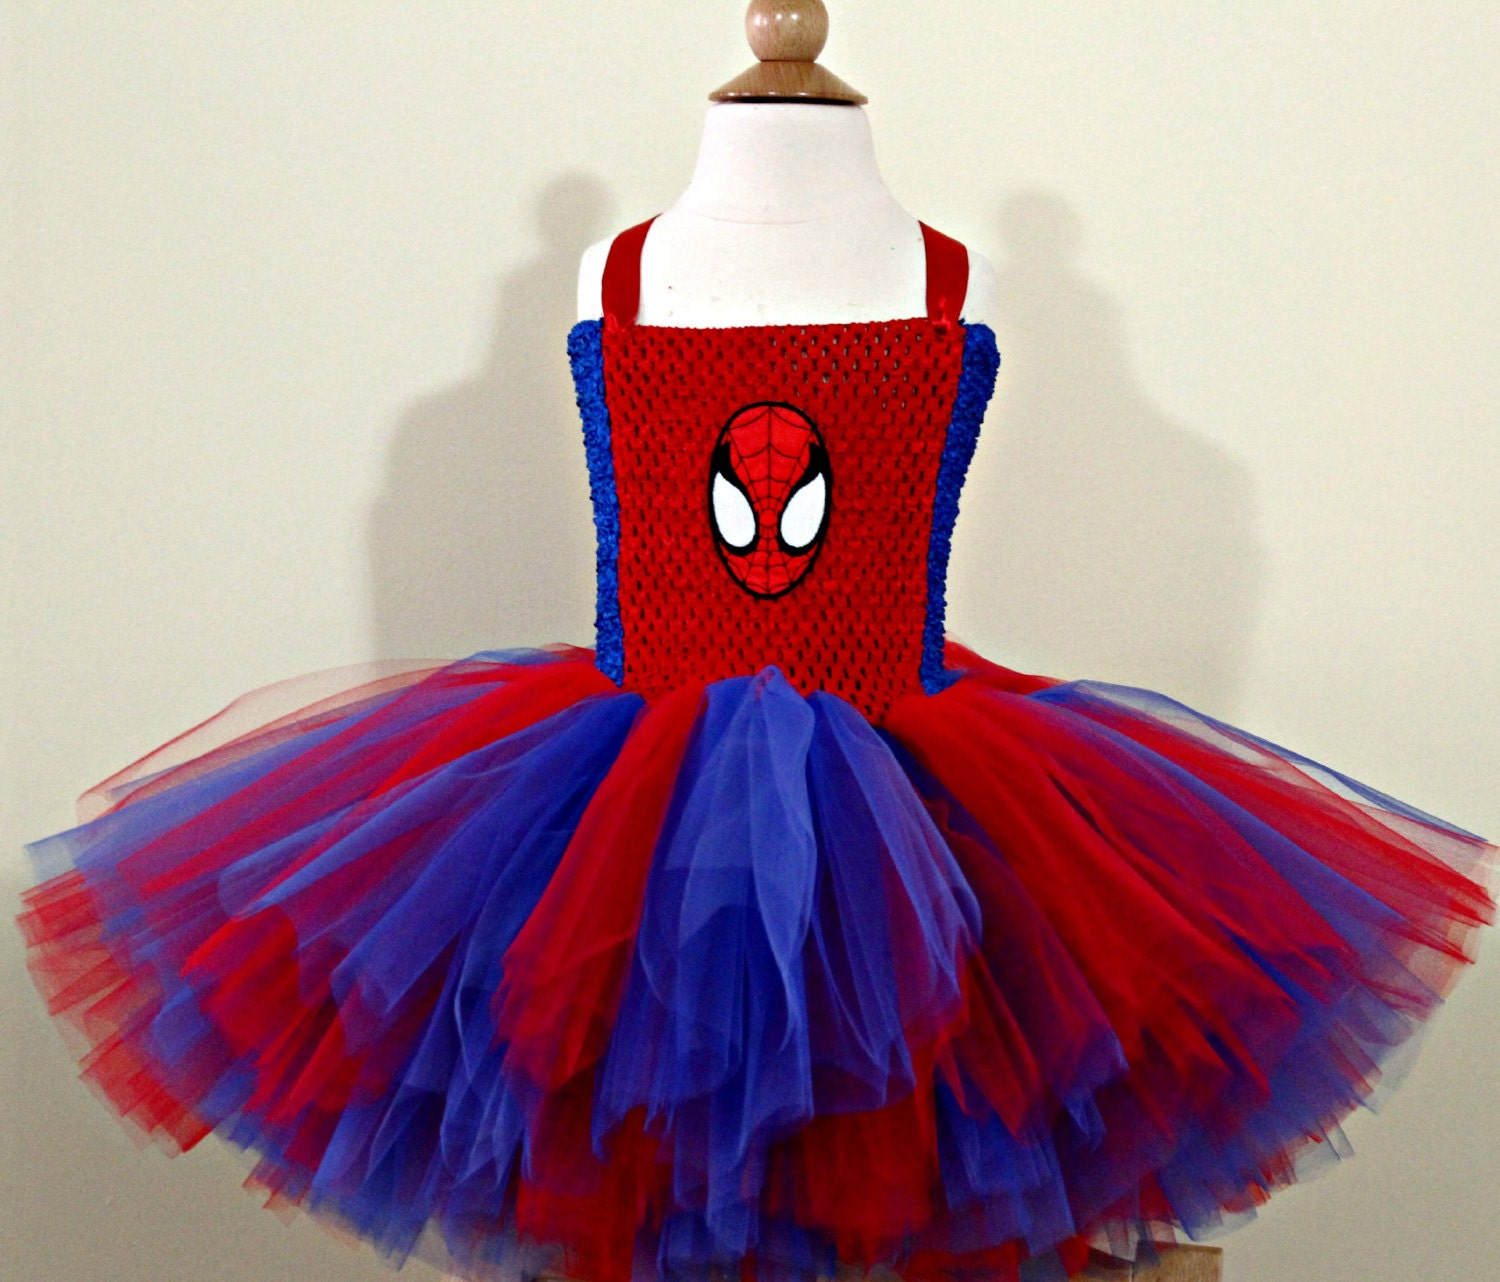 Spider-Girl Tutu Costume Dress Girls Kids Child Spider-Man Spidergirl Spiderman. Brand New · Rubie's. $ Top Rated Plus. Sellers with highest buyer ratings; Spider-Man Dress Costumes for Boys. Spider-Man Spider-Man Spider-Man LEGO Minifigure Parts & Accessories. Spider-Man Spider-Man Spider-Man LEGO Building Toys.